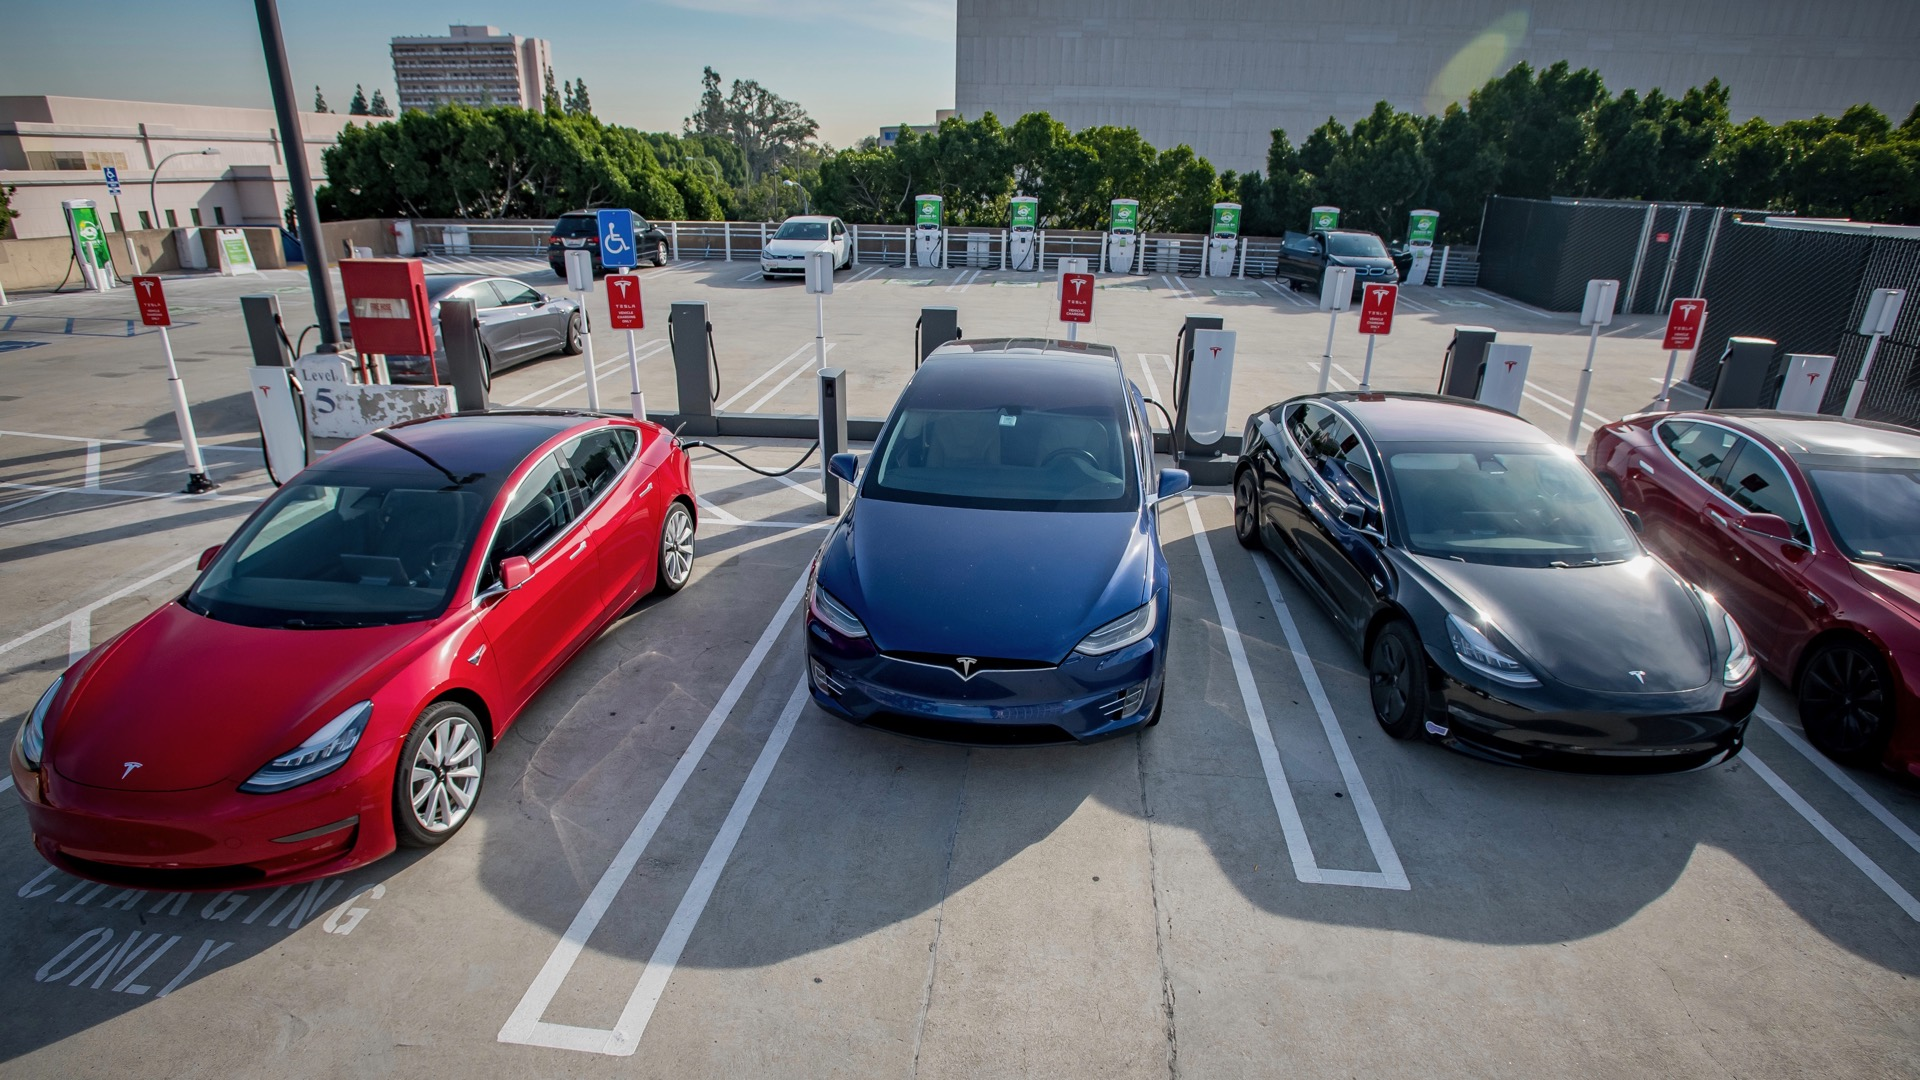 California heat waves prompt alerts about EV charging habits, energy conservation